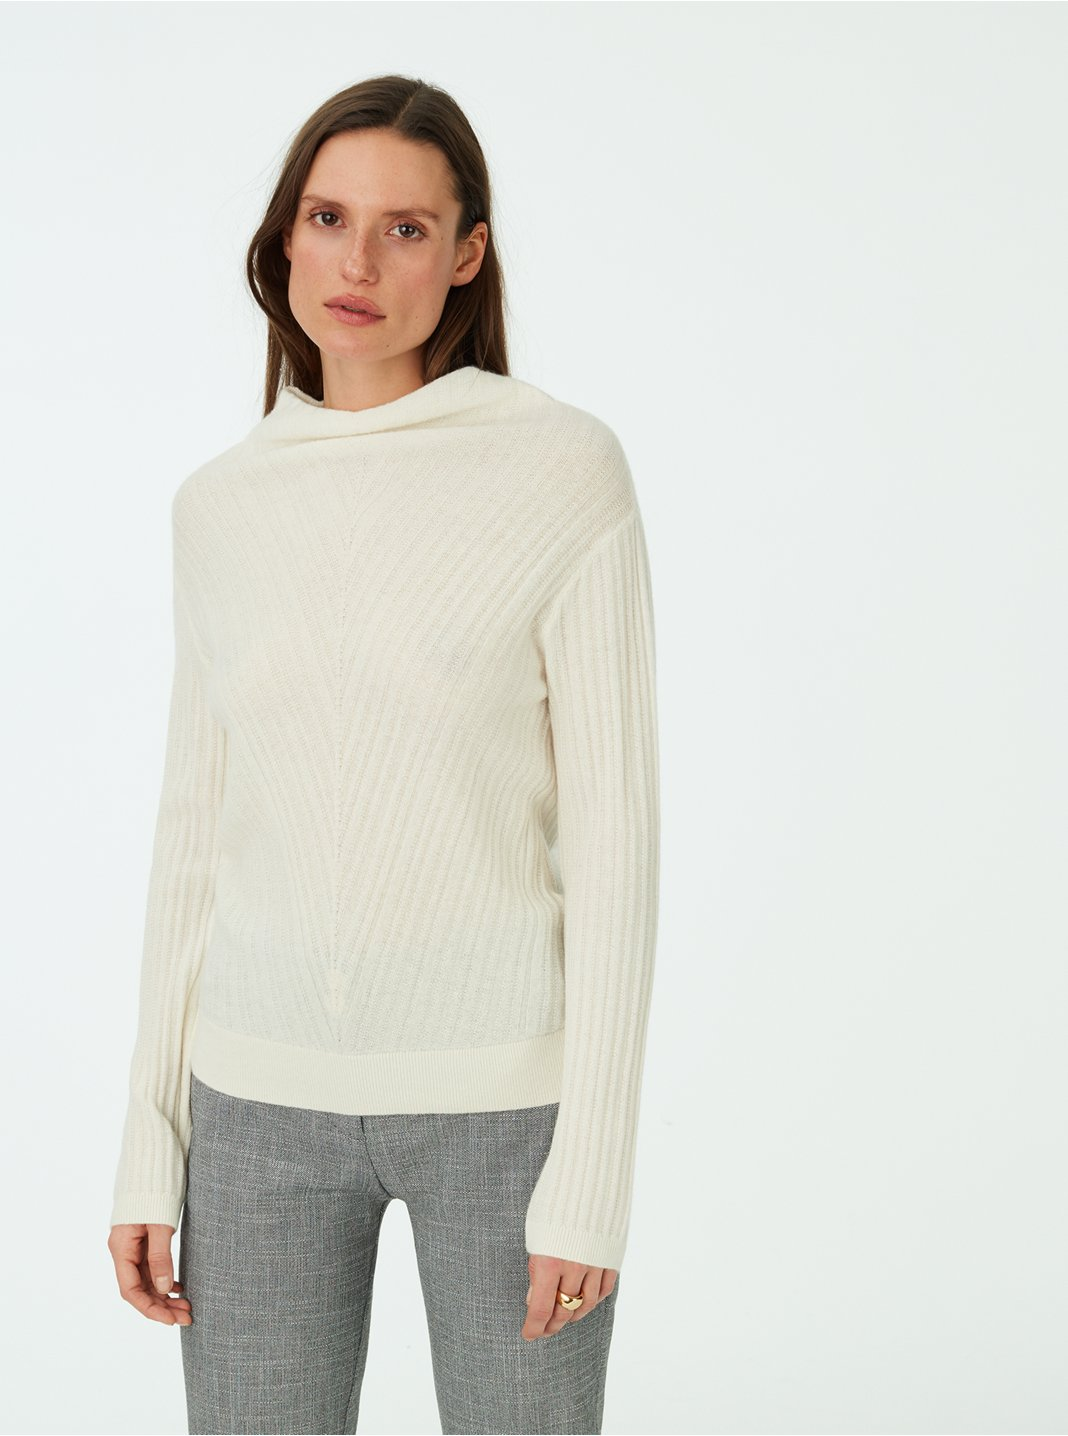 Amarynth Cashmere Sweater